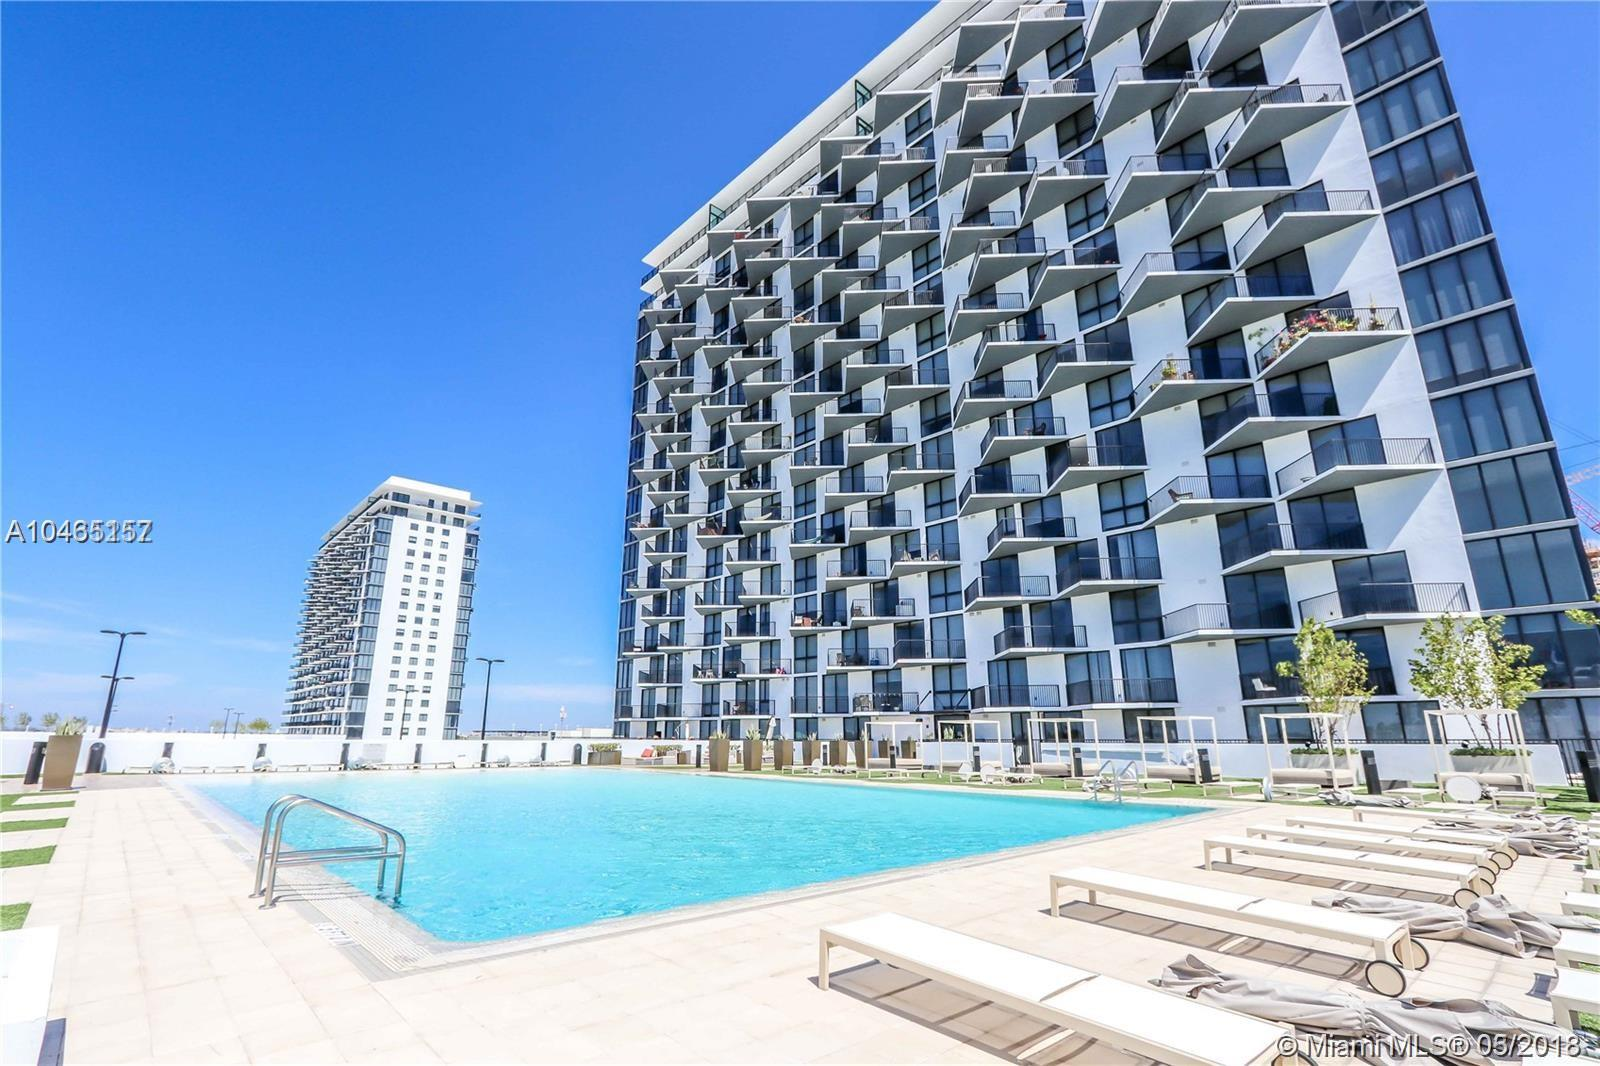 5252 Nw 85 Ave #1602, Doral FL, 33166